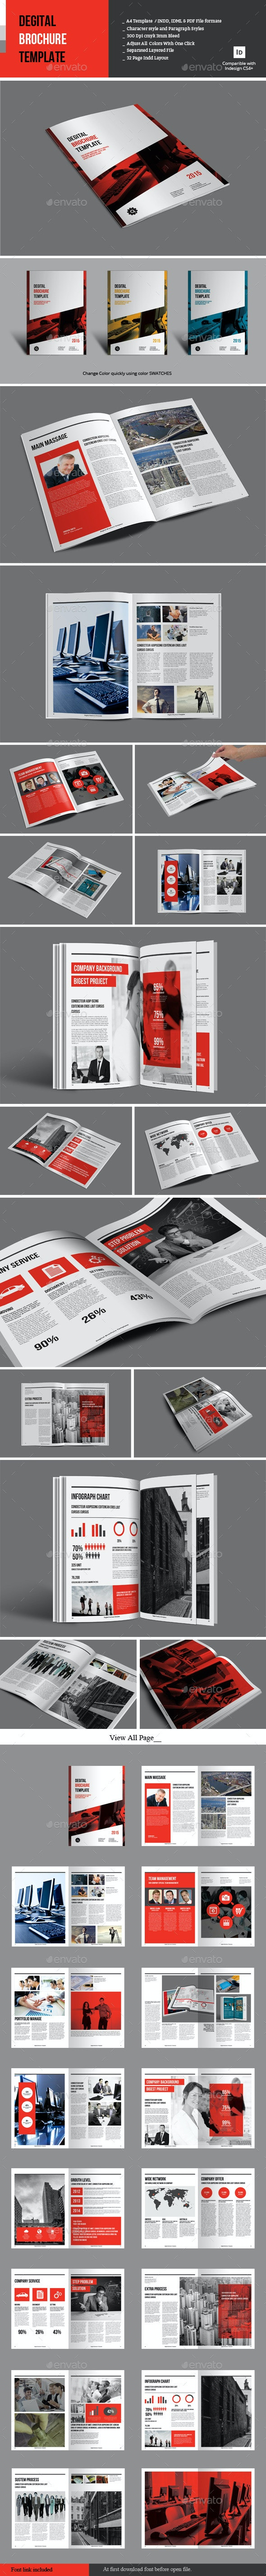 Degital Brochure Template - Corporate Brochures